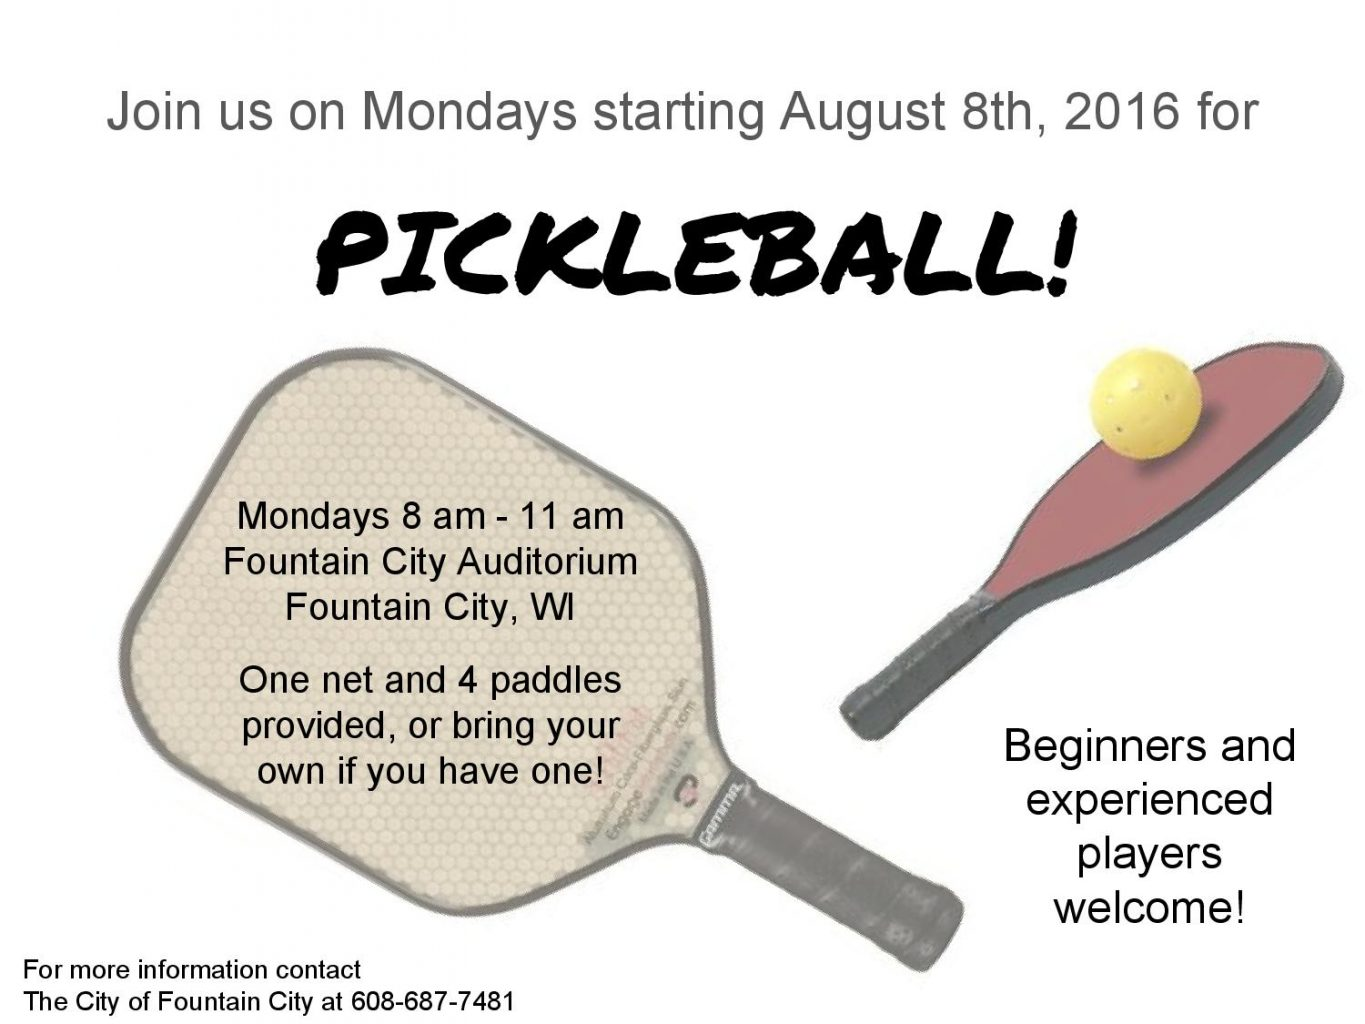 Pickleball @ Fountain City Auditorium